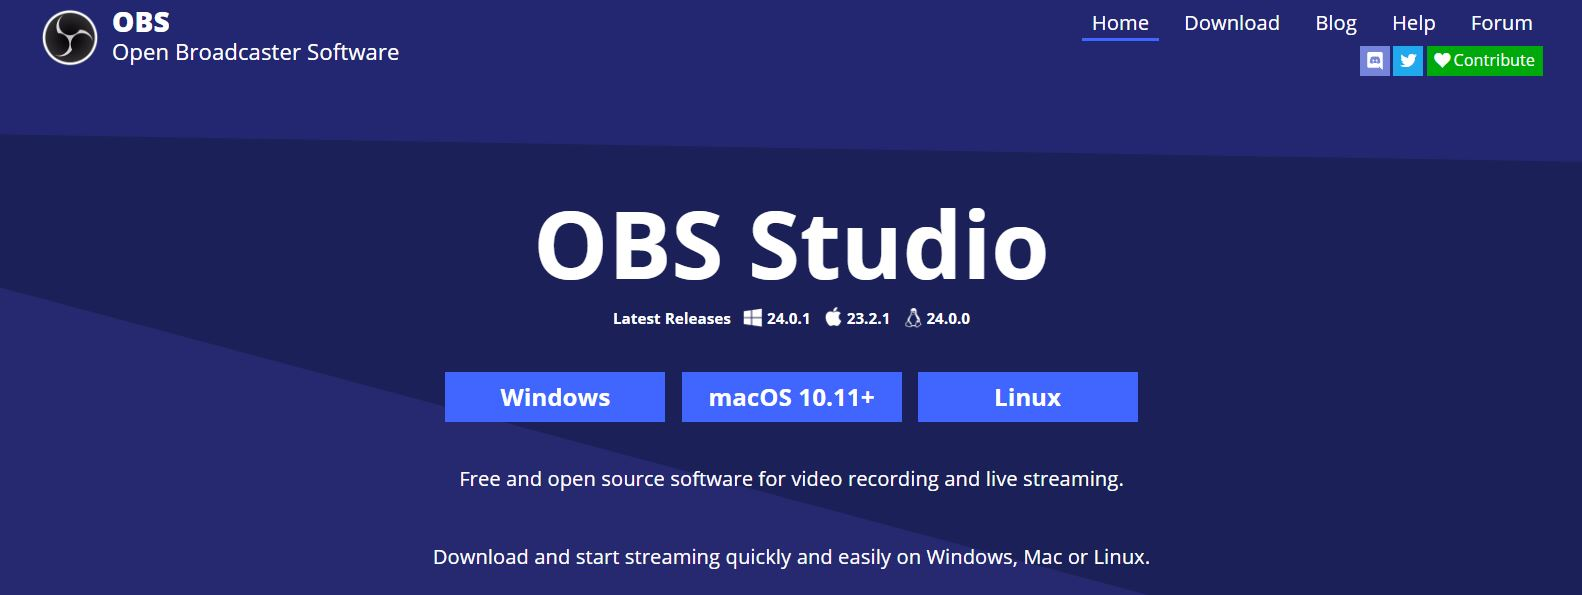 Download OBS software select device operating system